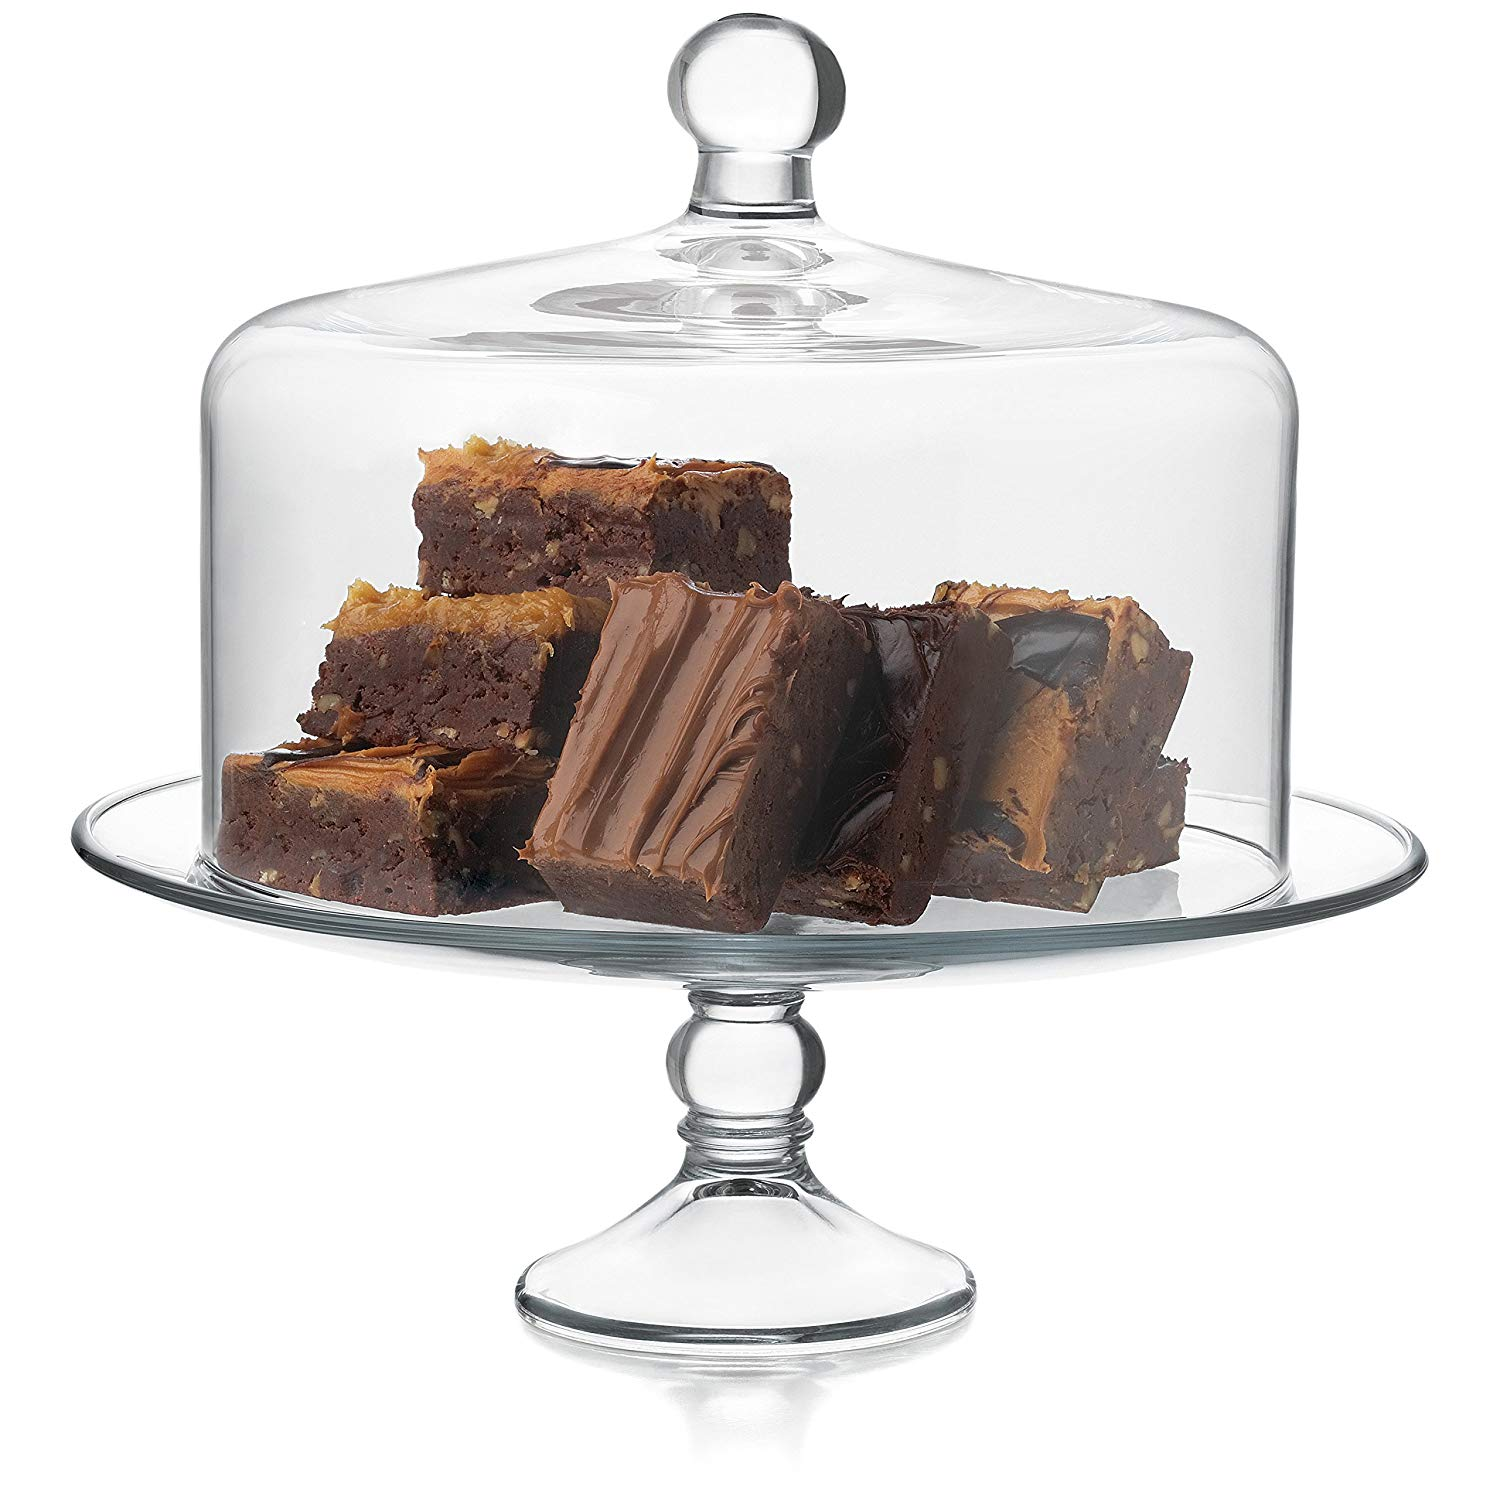 gifts for mom that likes to bake, libby selene glass cake stand with dome